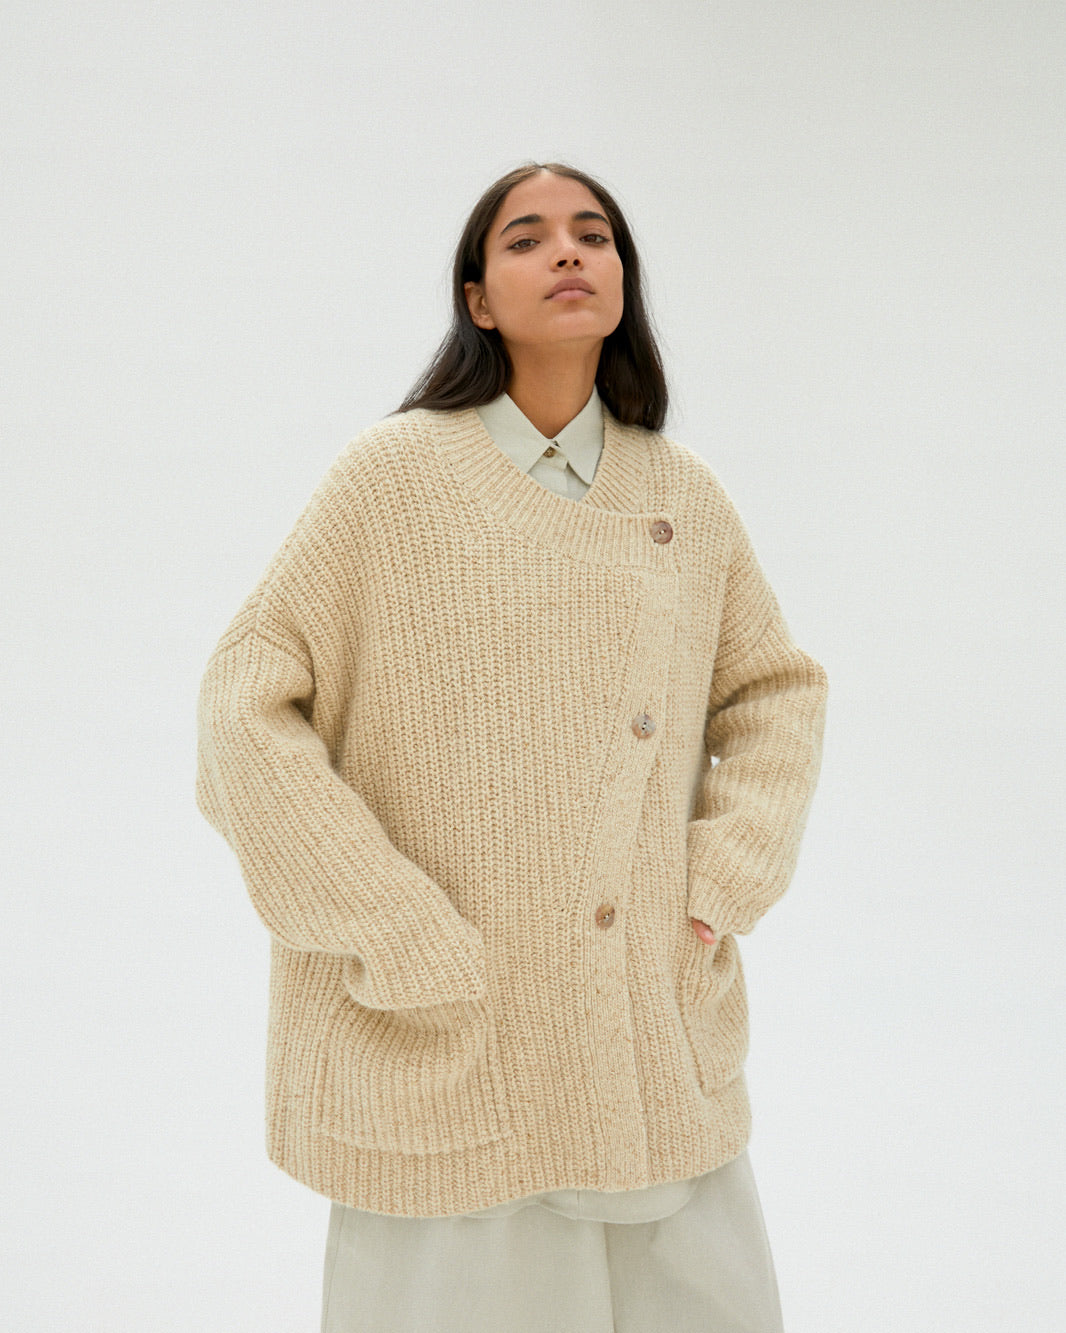 Chunky Soft Wool Cardigan in Natural.